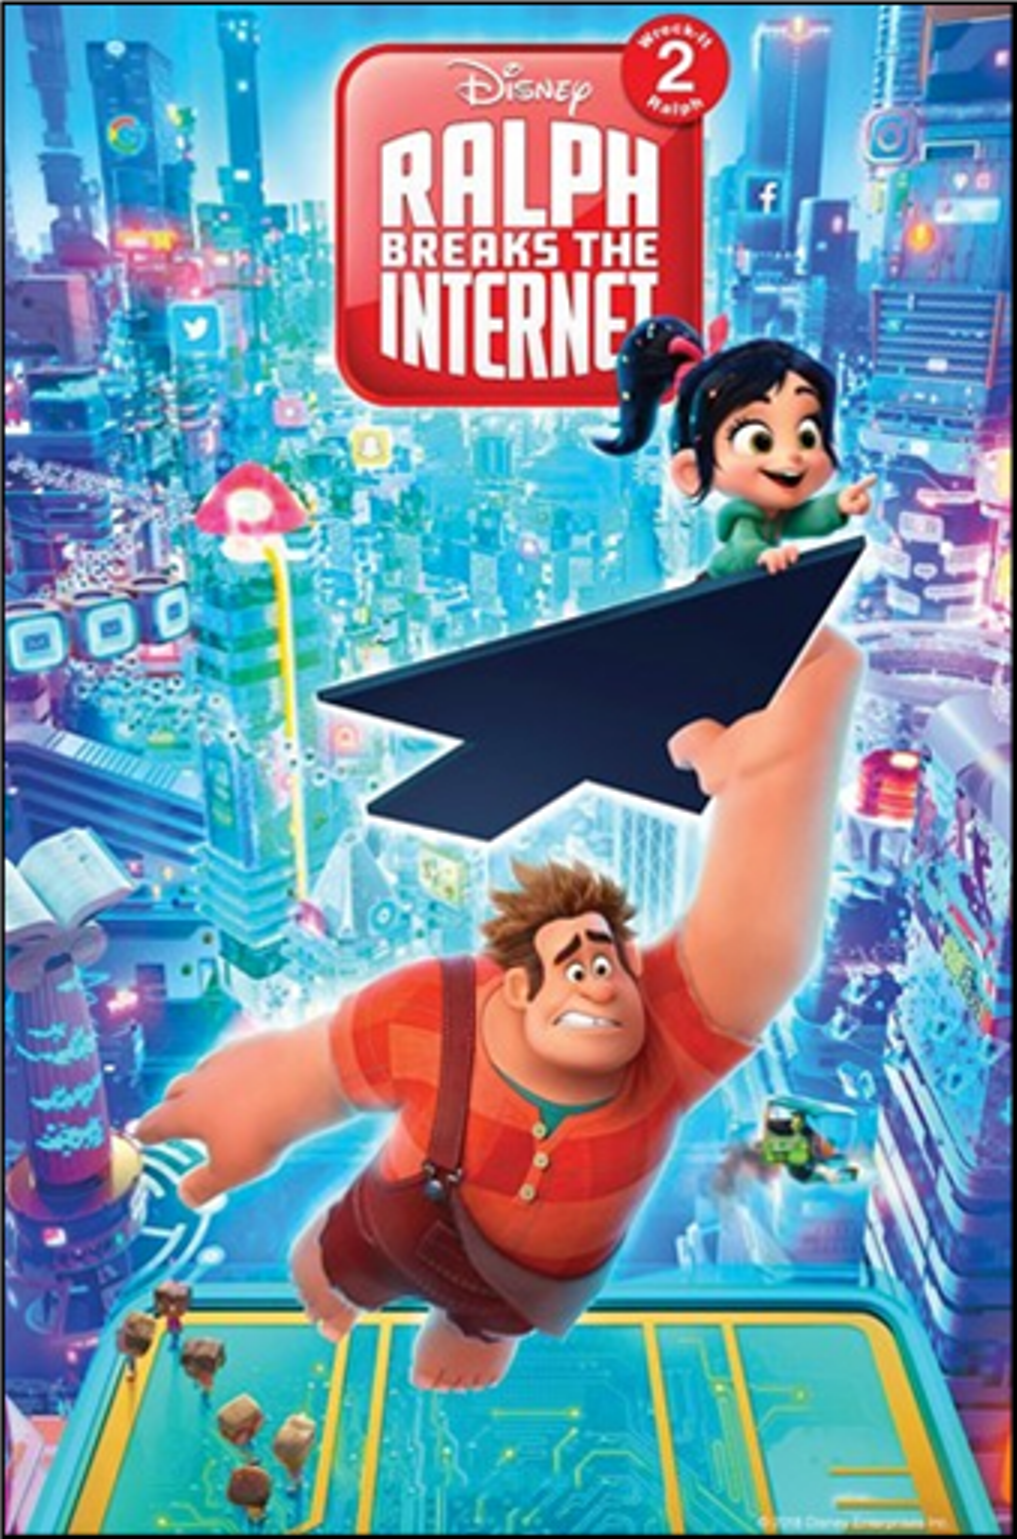 Ralph breaks the internet @ Lawton Public Library